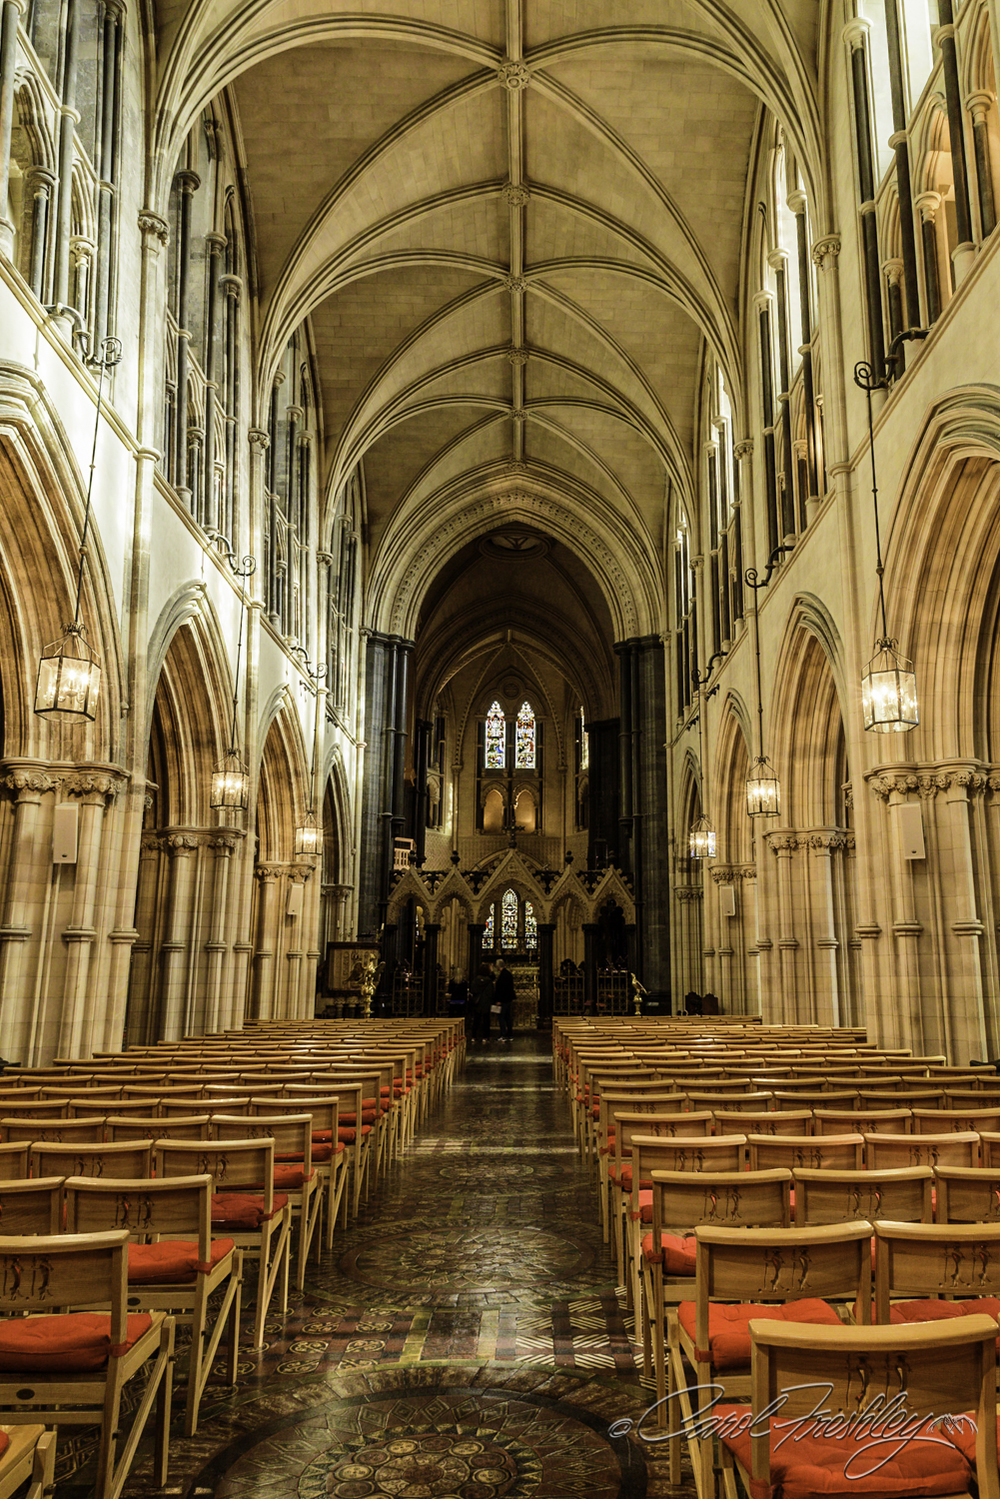 Talk about 'bright'!!  Christ Church allows photography and tripods.  A nice change for us.